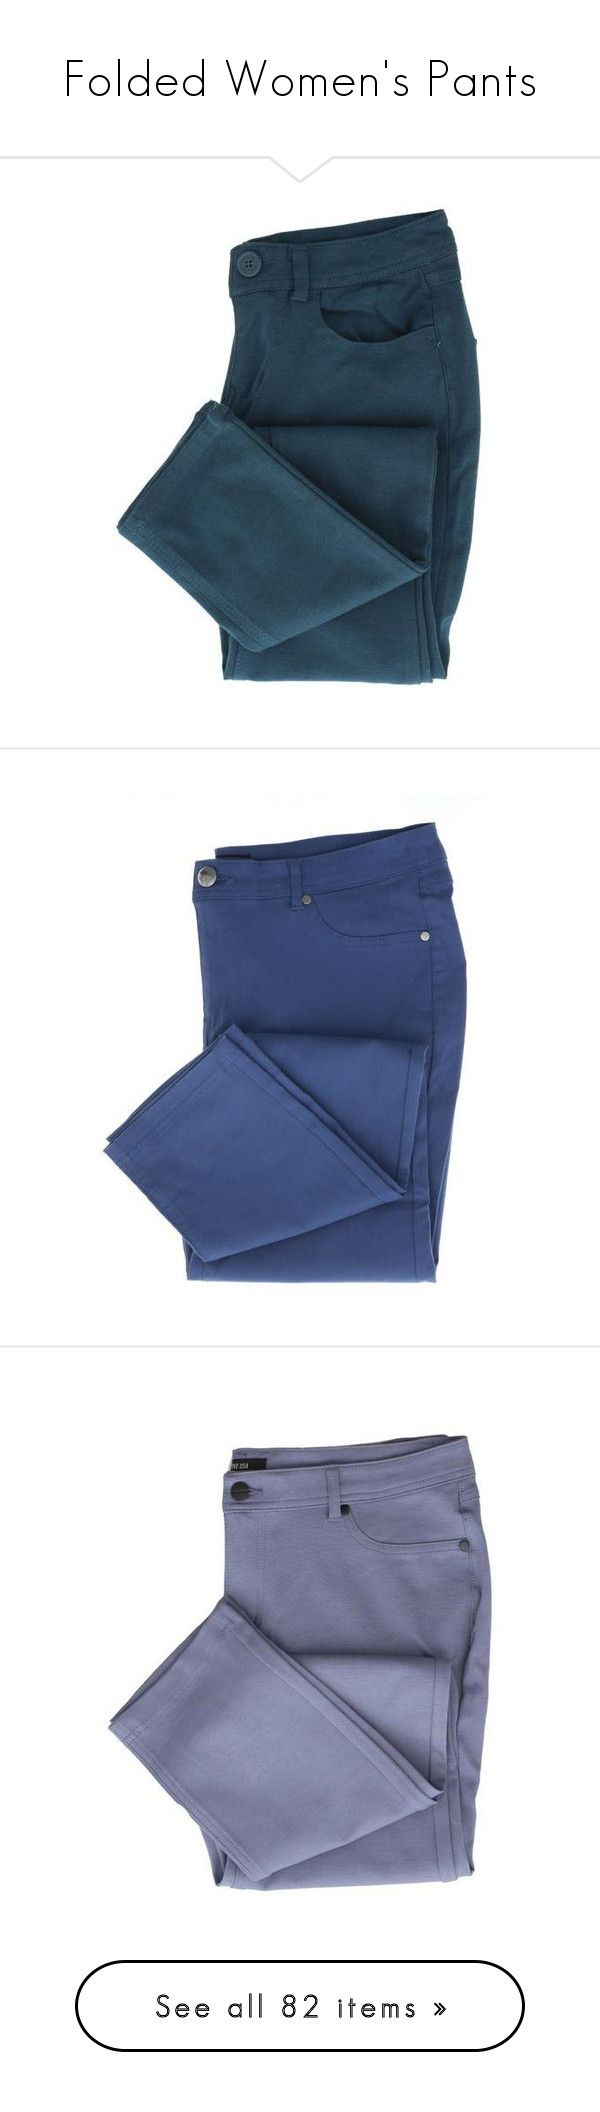 """""""Folded Women's Pants"""" by scarletj17 ❤ liked on Polyvore featuring denim, jeans, Womens, pants, blue trousers, five pocket pants, 5 pocket pants, blue pants, ponte trousers and blue slim fit pants"""